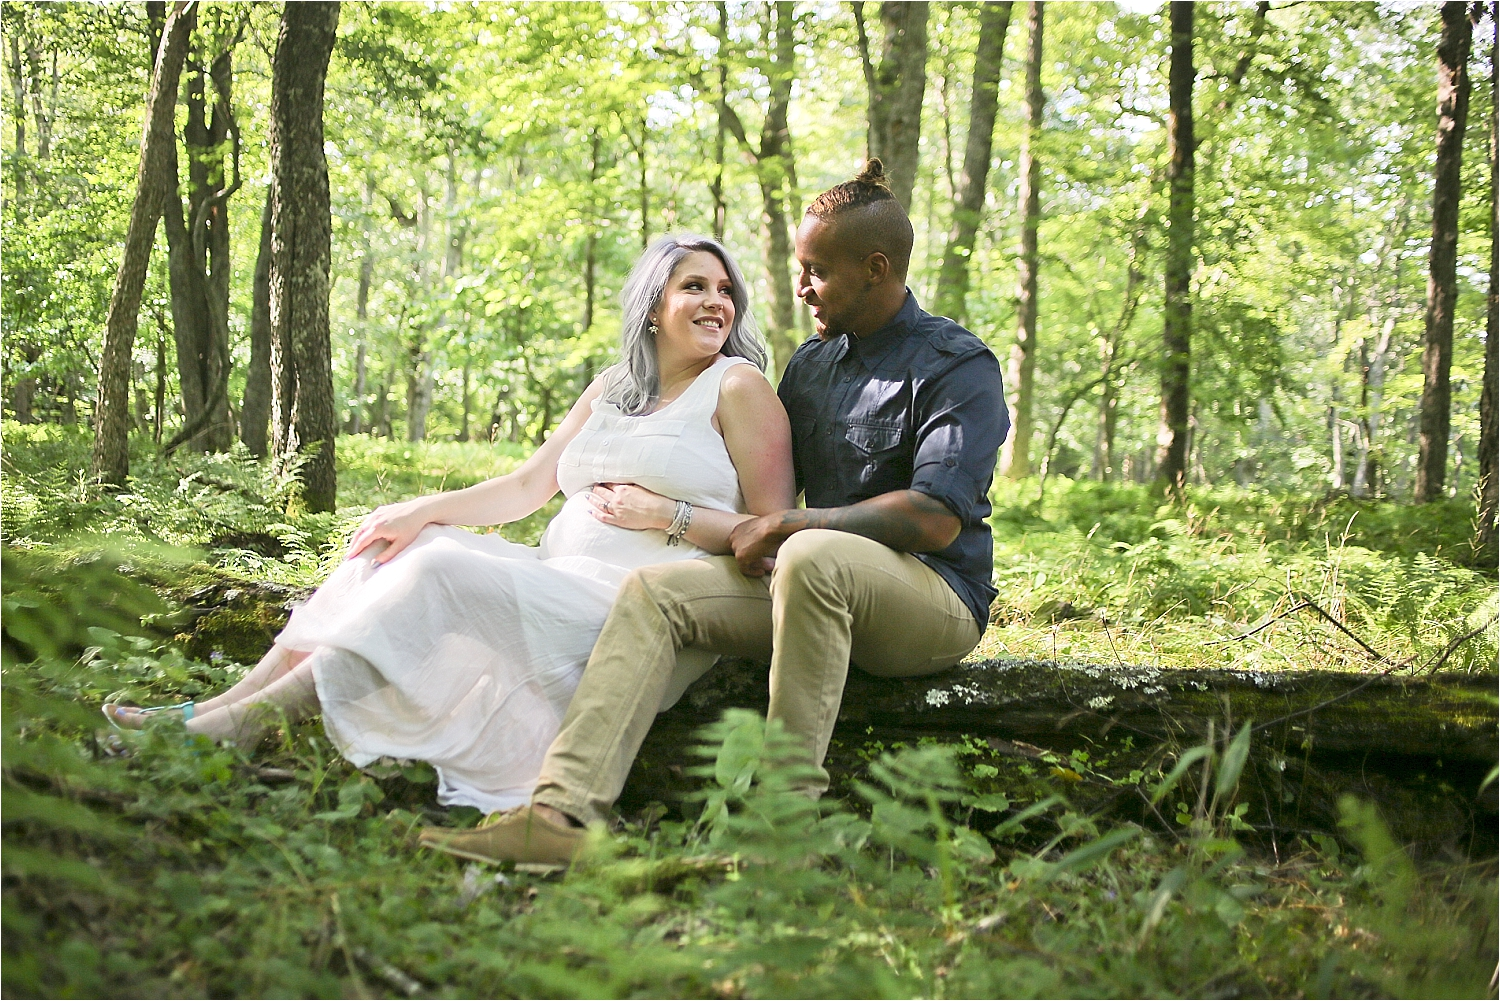 Blacksburg-Maternity-Portrait-Photographer-0004.jpg